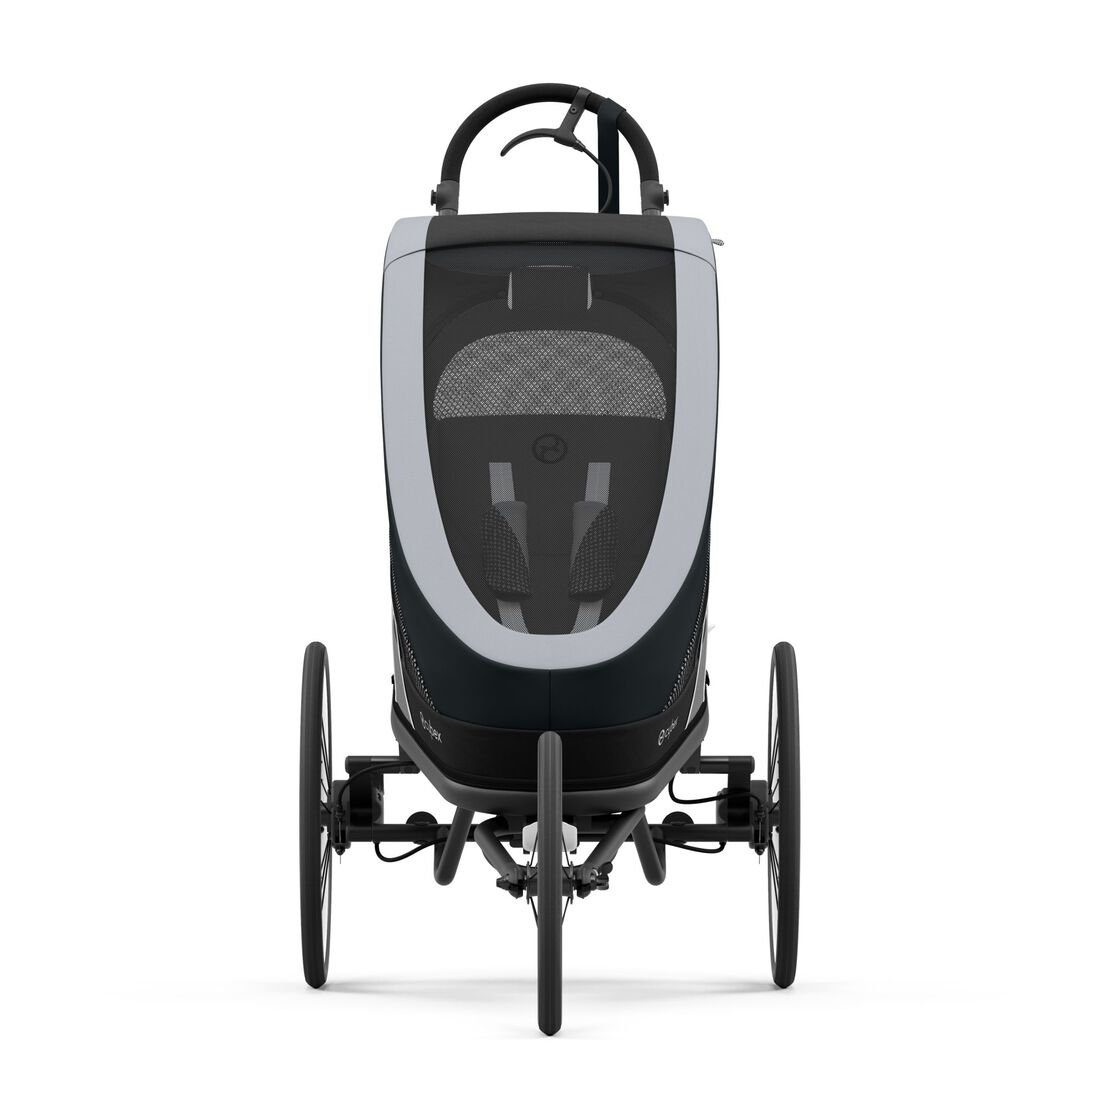 CYBEX Zeno Seat Pack - All Black in All Black large image number 3